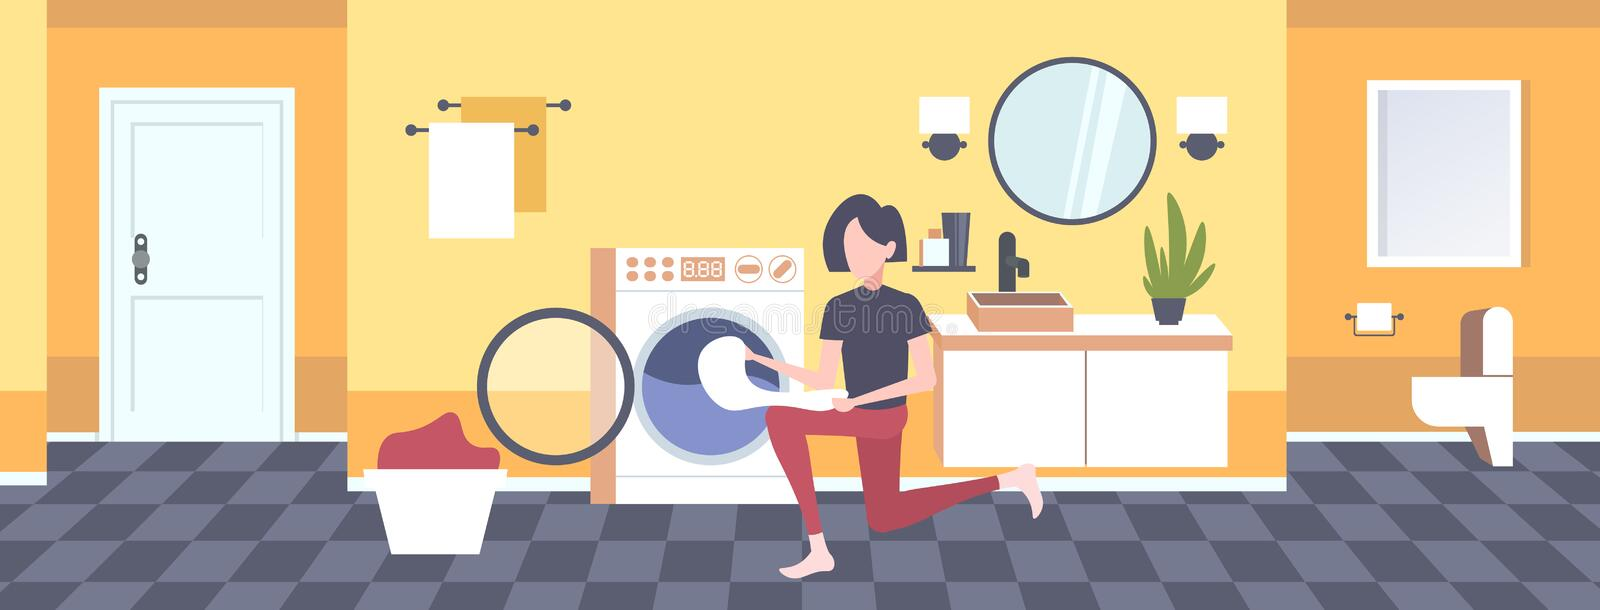 Woman putting dirty clothes into washing machine housewife doing housework modern laundry room interior cartoon. Character full length horizontal flat vector royalty free illustration